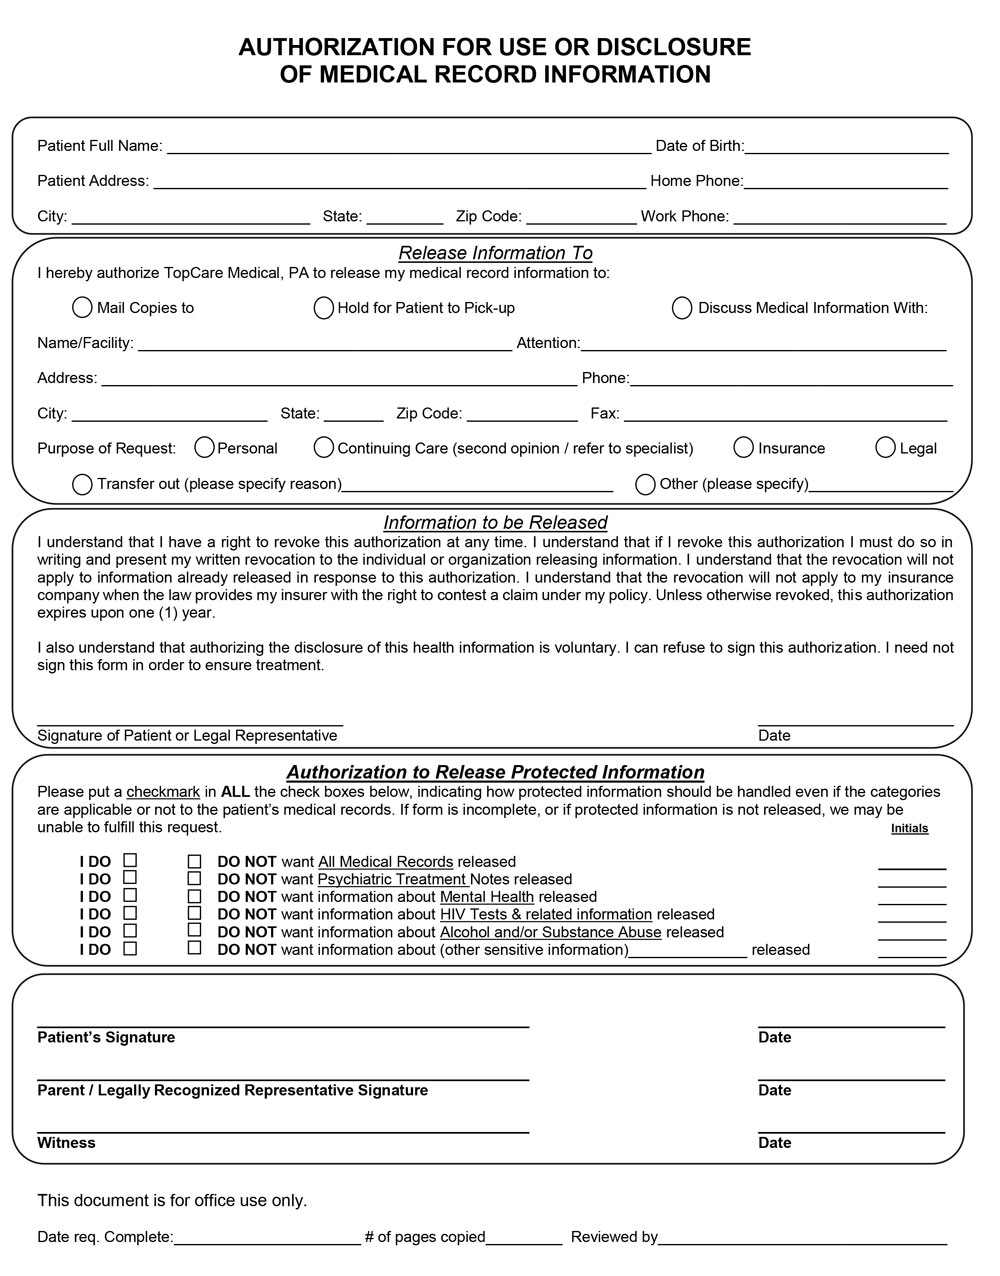 Authorization-form-for-disclosure-of-medical-records-2016